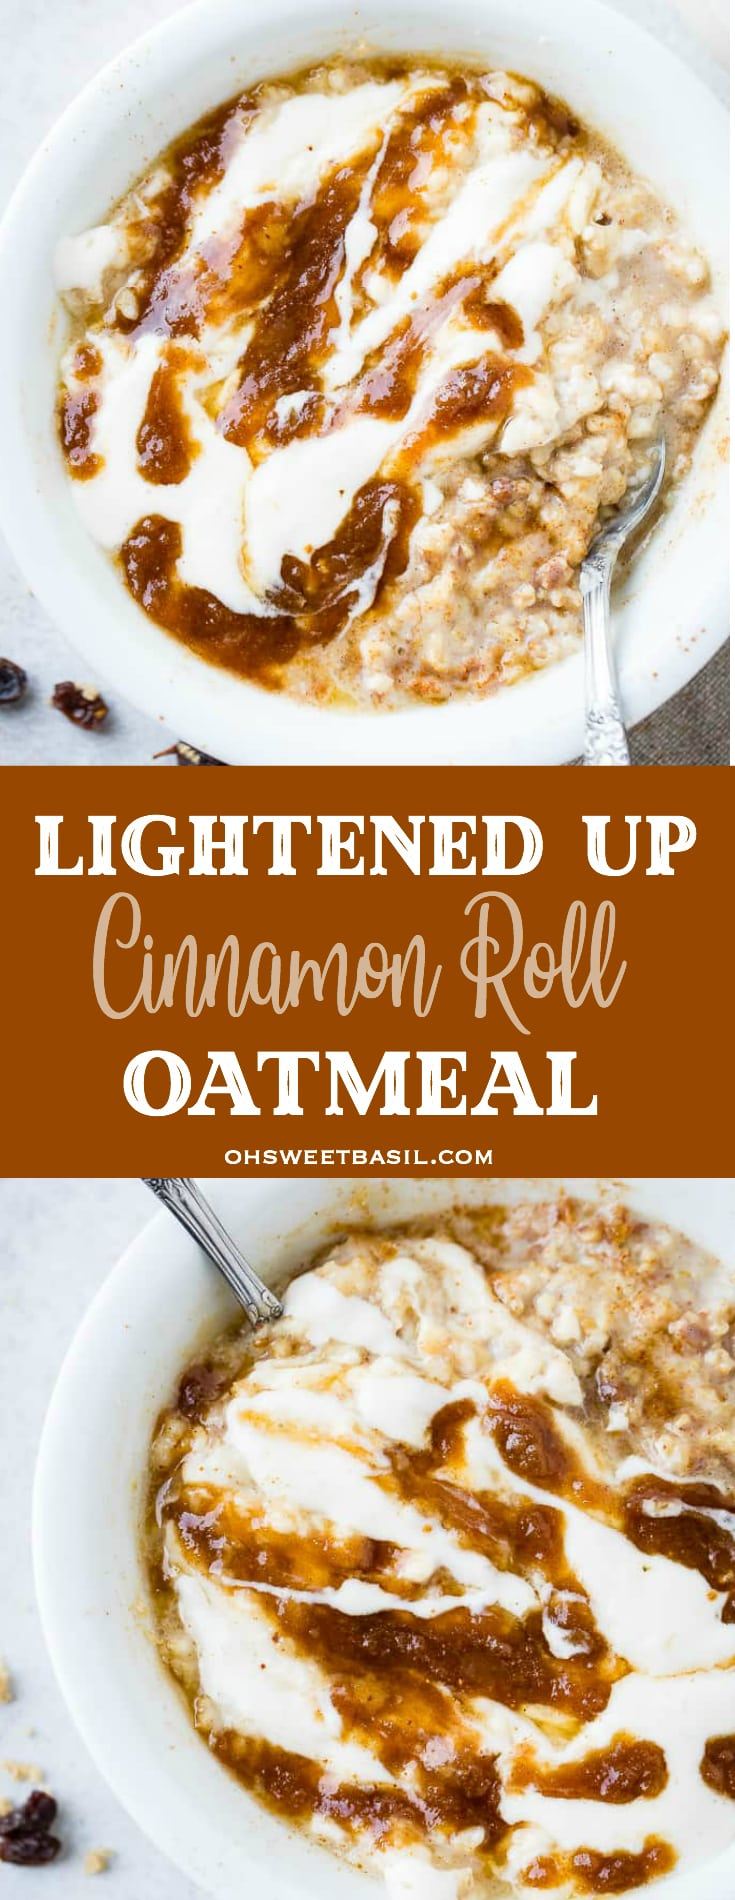 a bowl of lightened up cinnamon roll oatmeal with brown sugar, cinnamon and raisins sprinkled around it and a cinnamon filling with a cinnamon roll glaze drizzled over the top